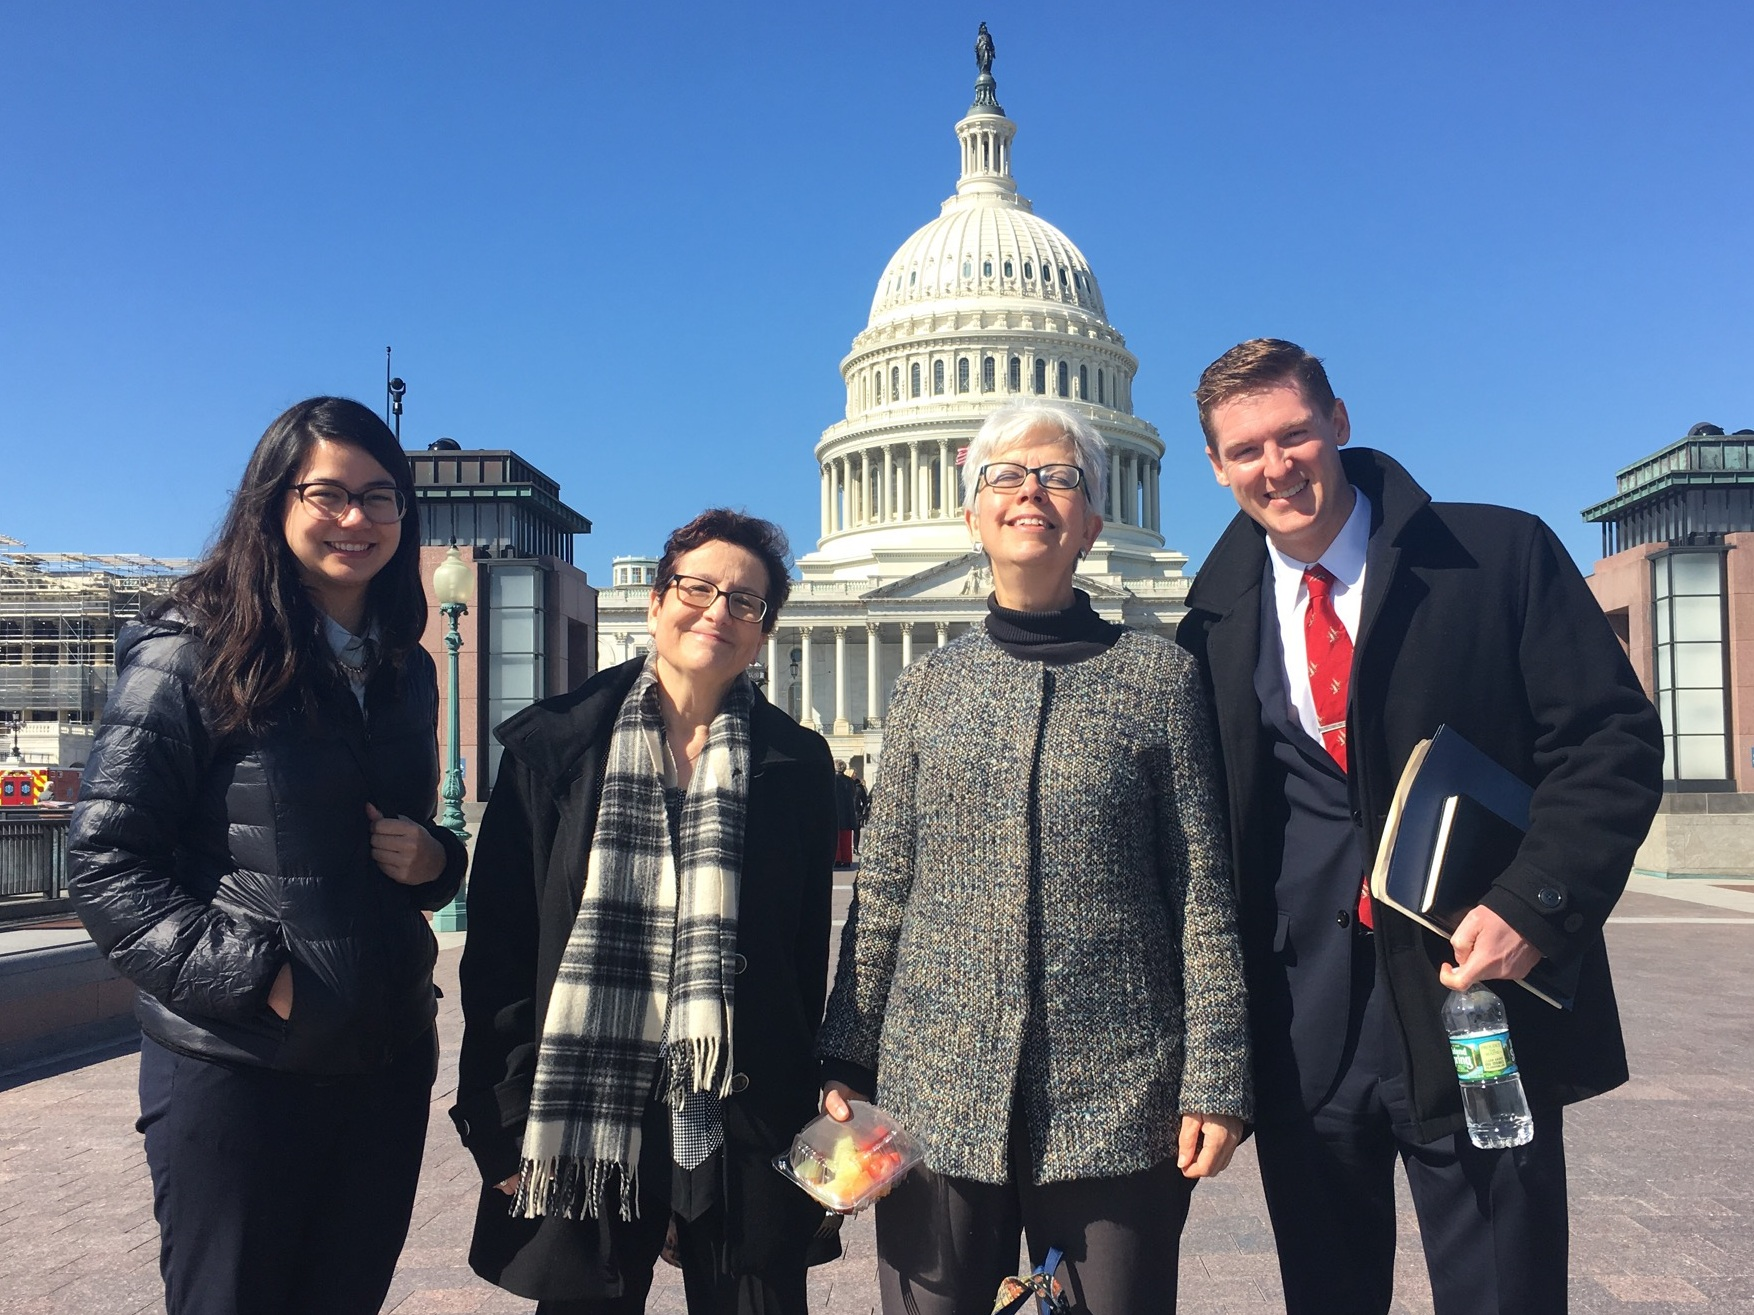 National Audubon, Pennsylvania Environmental Council, National Wildlife Federation, and Ducks Unlimited representatives at the Capitol for Hill Day.